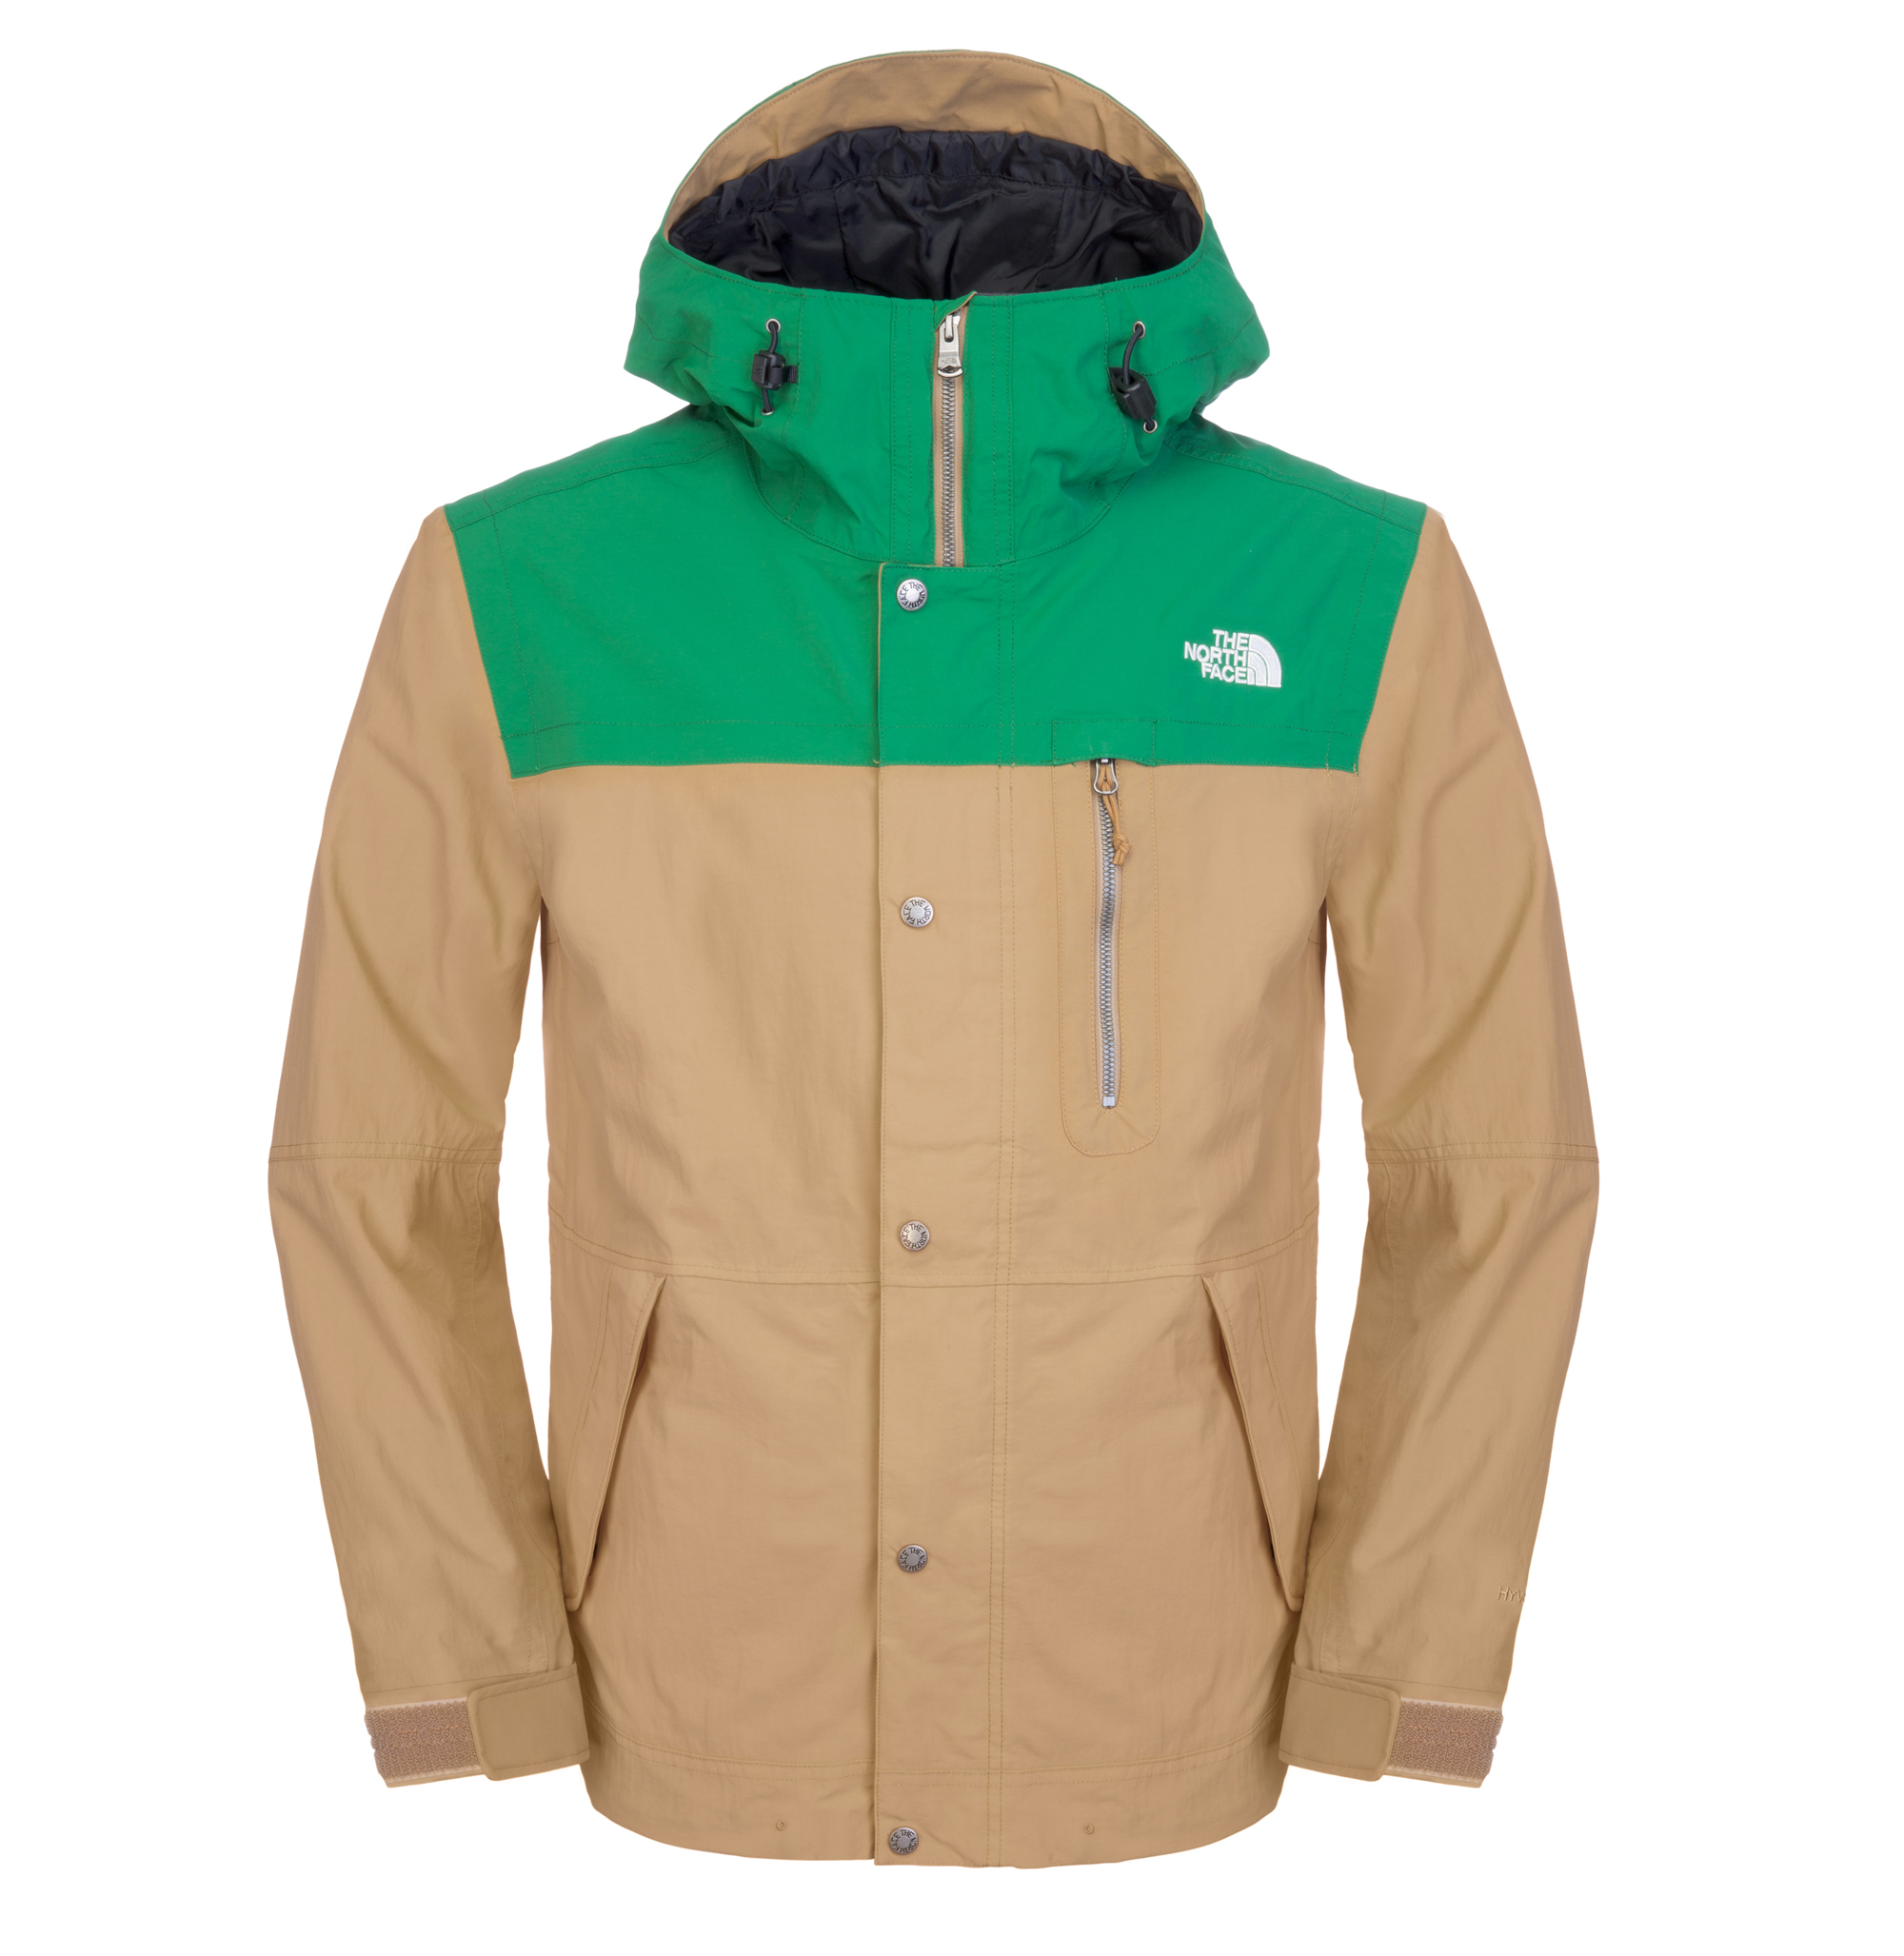 northface-park&pipegreen